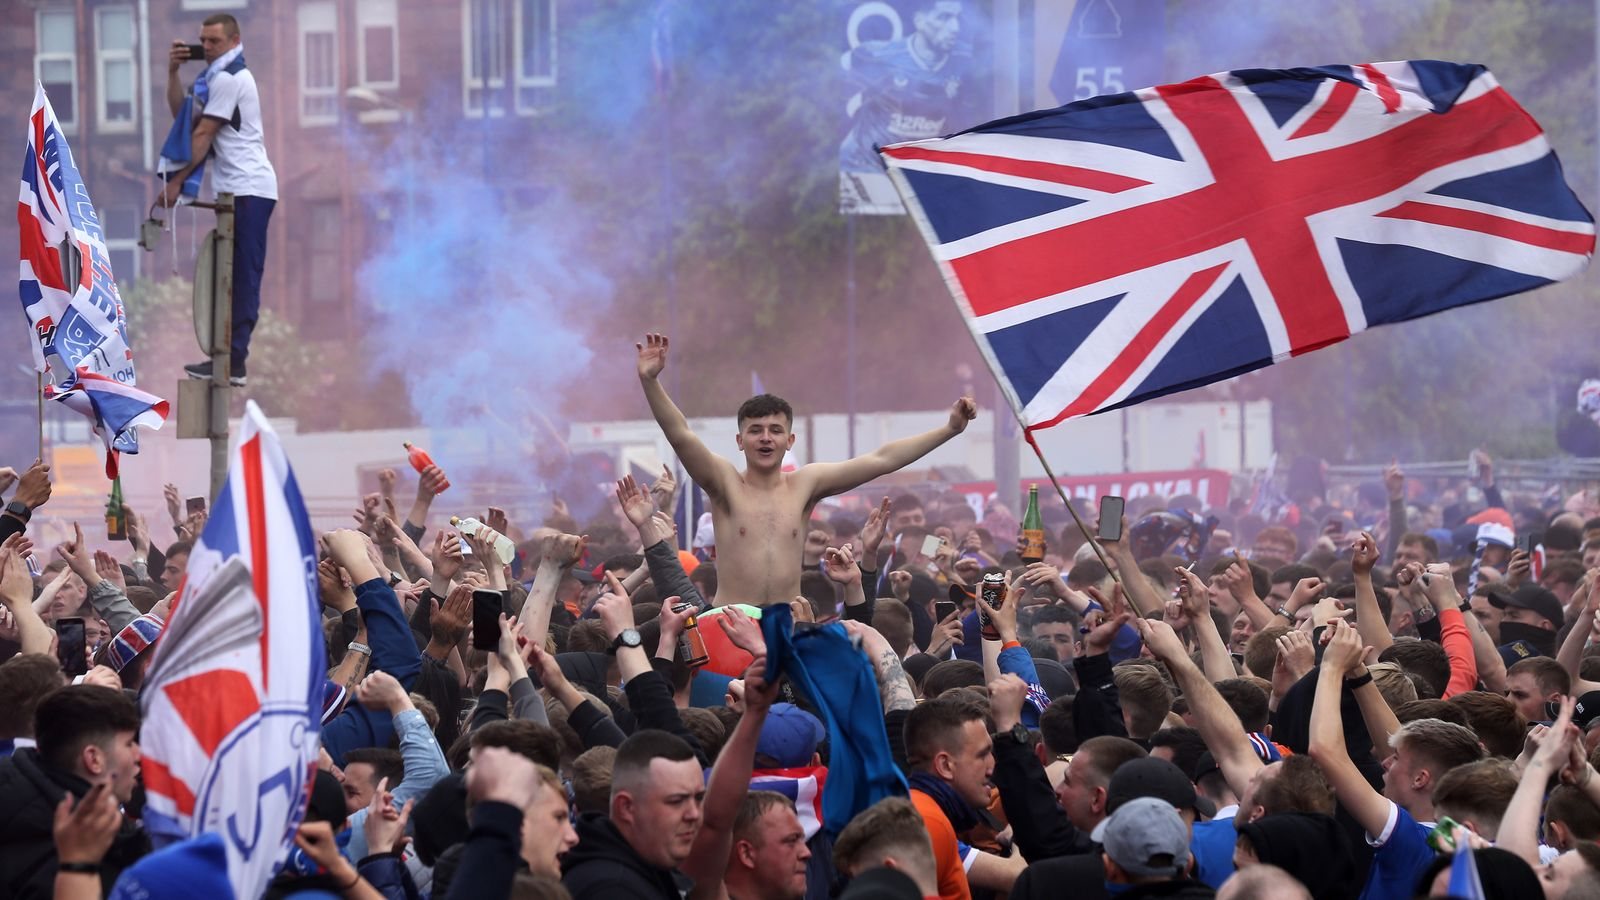 Rangers fans gather in Glasgow to celebrate Scottish Premiership title win despite warnings from police